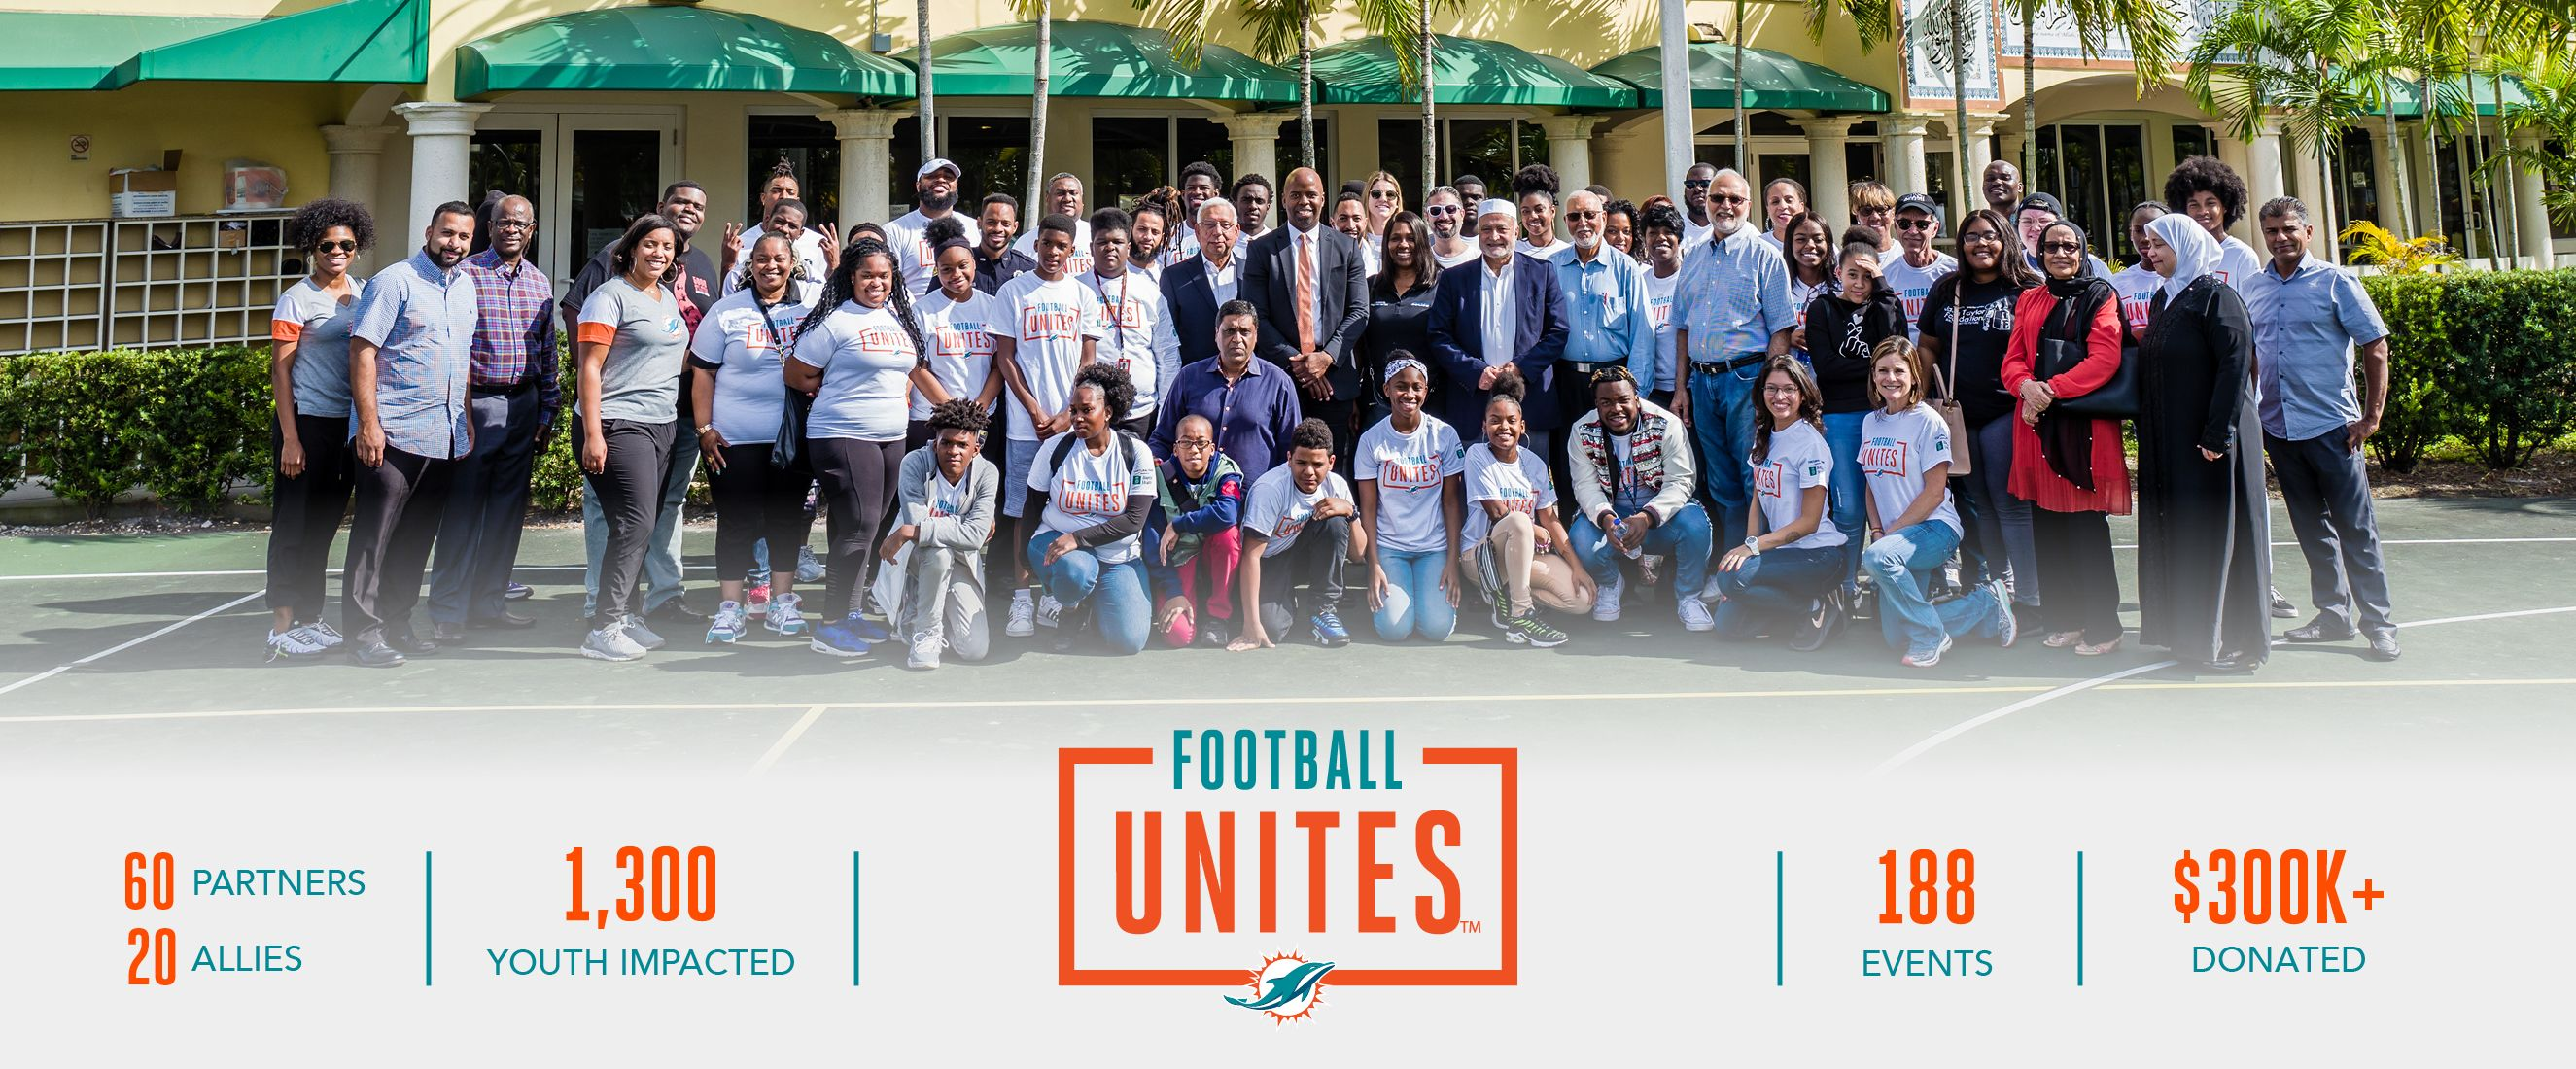 Graphic: Football Unites Header - 60 Partners, 20 Allies, 1,300 Youth Impacted, 188 Events, Over 300K Donated